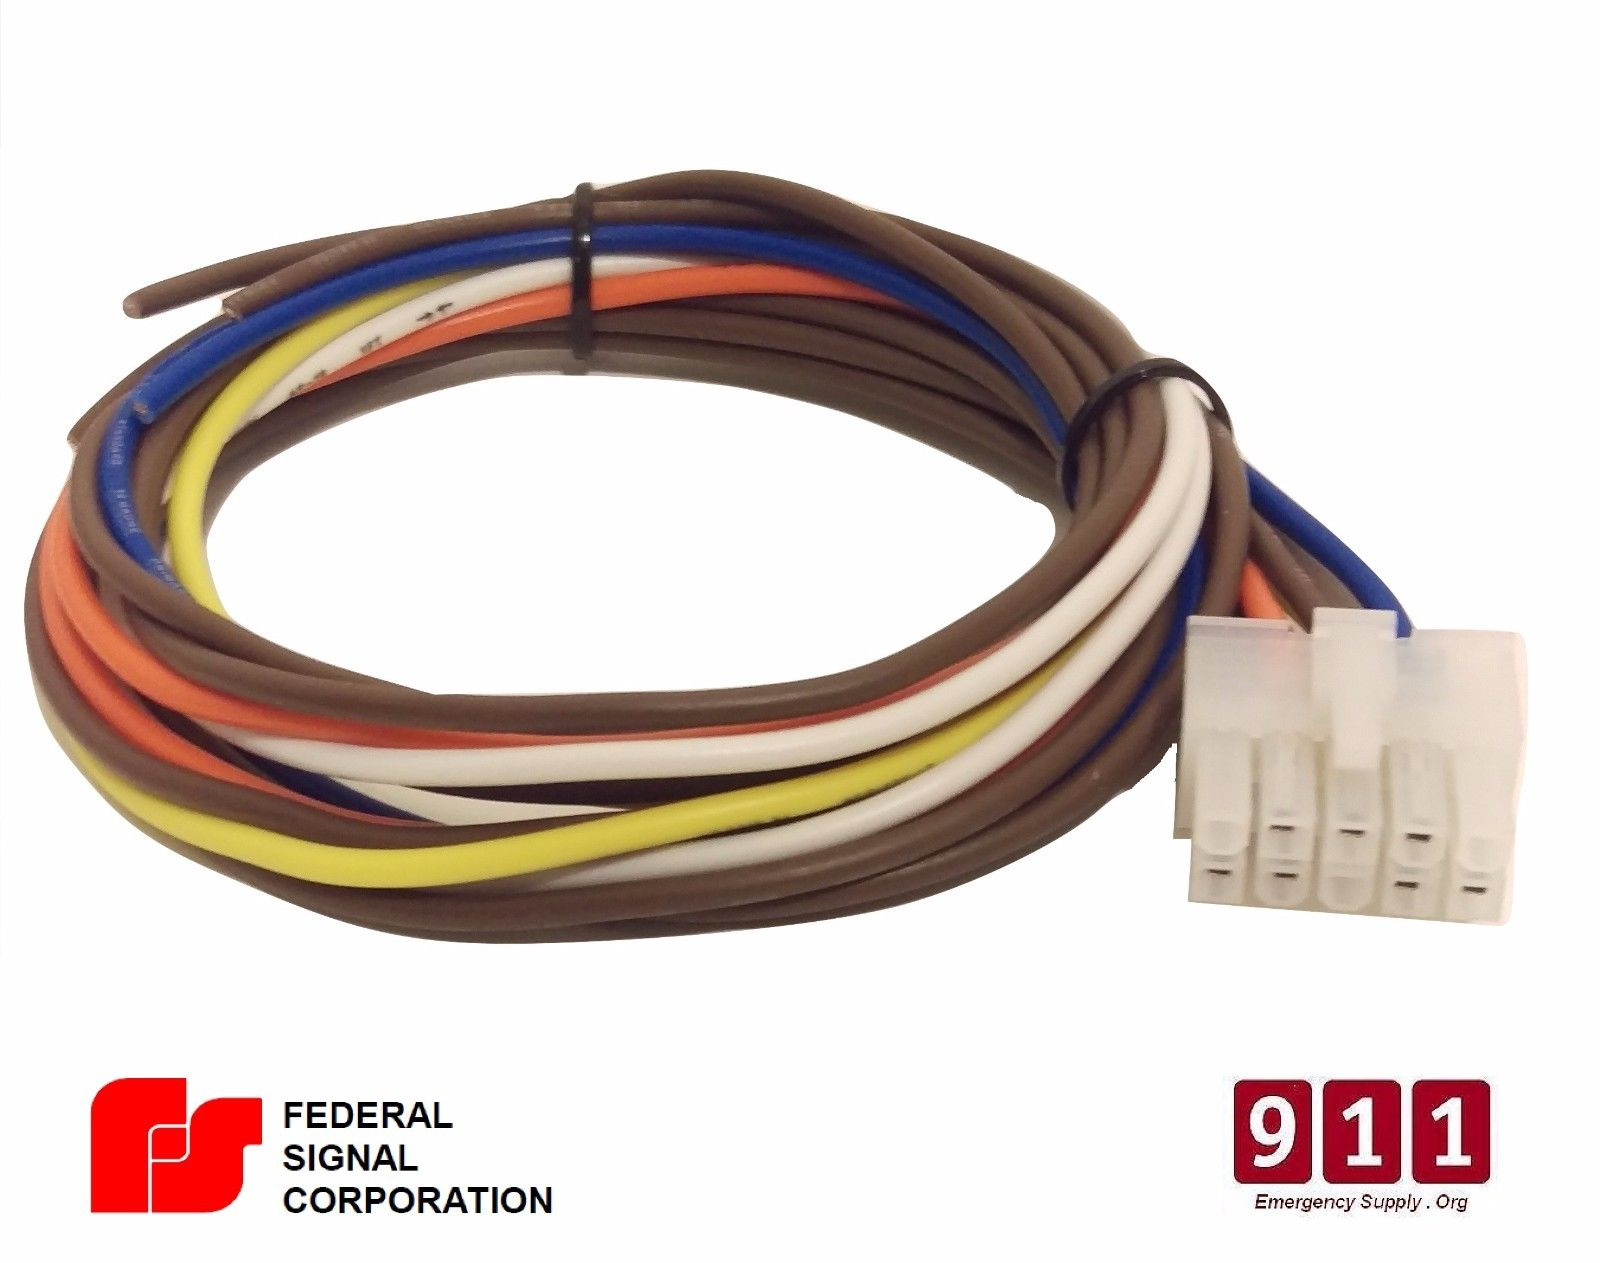 [SCHEMATICS_4UK]  Federal Signal Siren Power Harness 10 Pin Cable PA300 690000 | Federal Pa300 Siren Wiring Diagram |  | 911 Emergency Supply